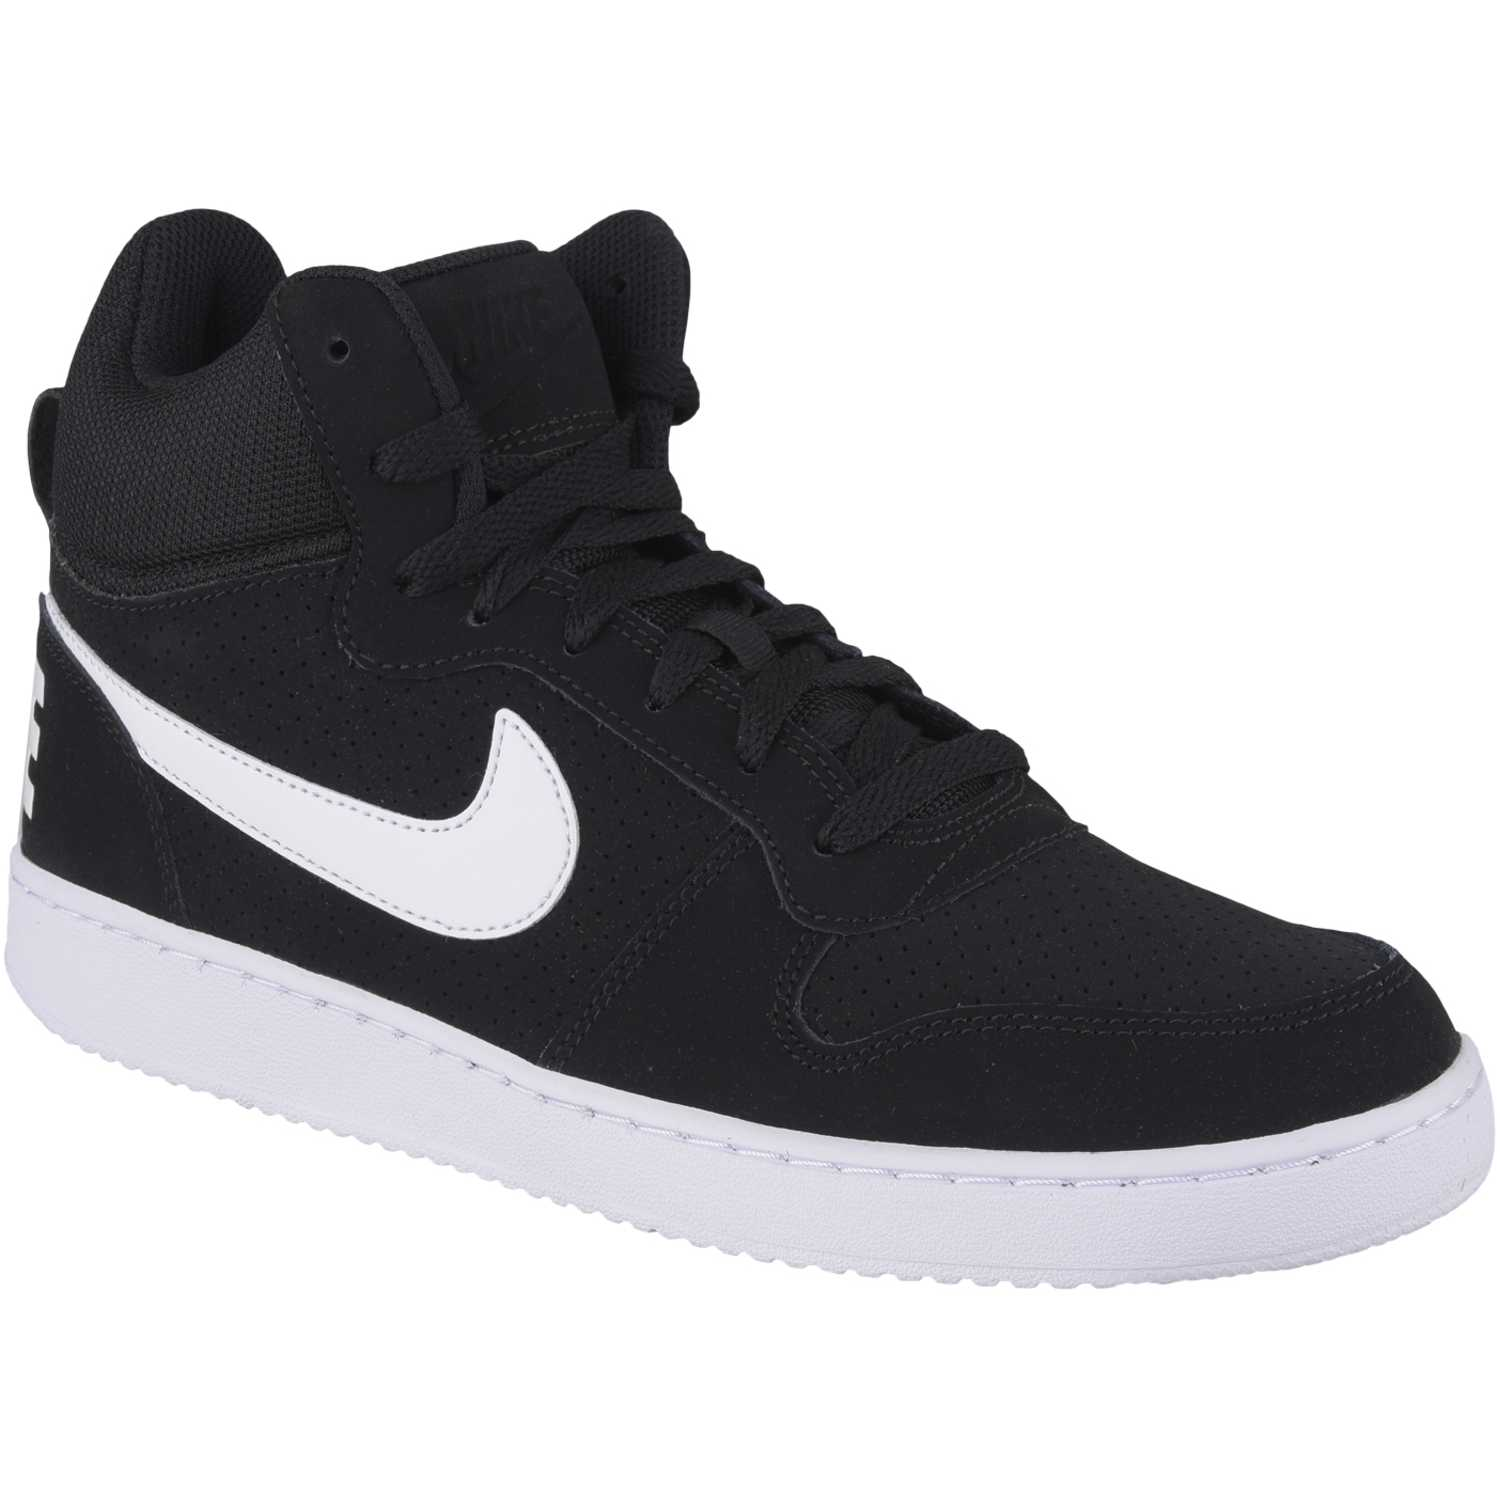 competitive price 697a1 7e703 Zapatilla de Hombre Nike Negro   blanco court borough mid